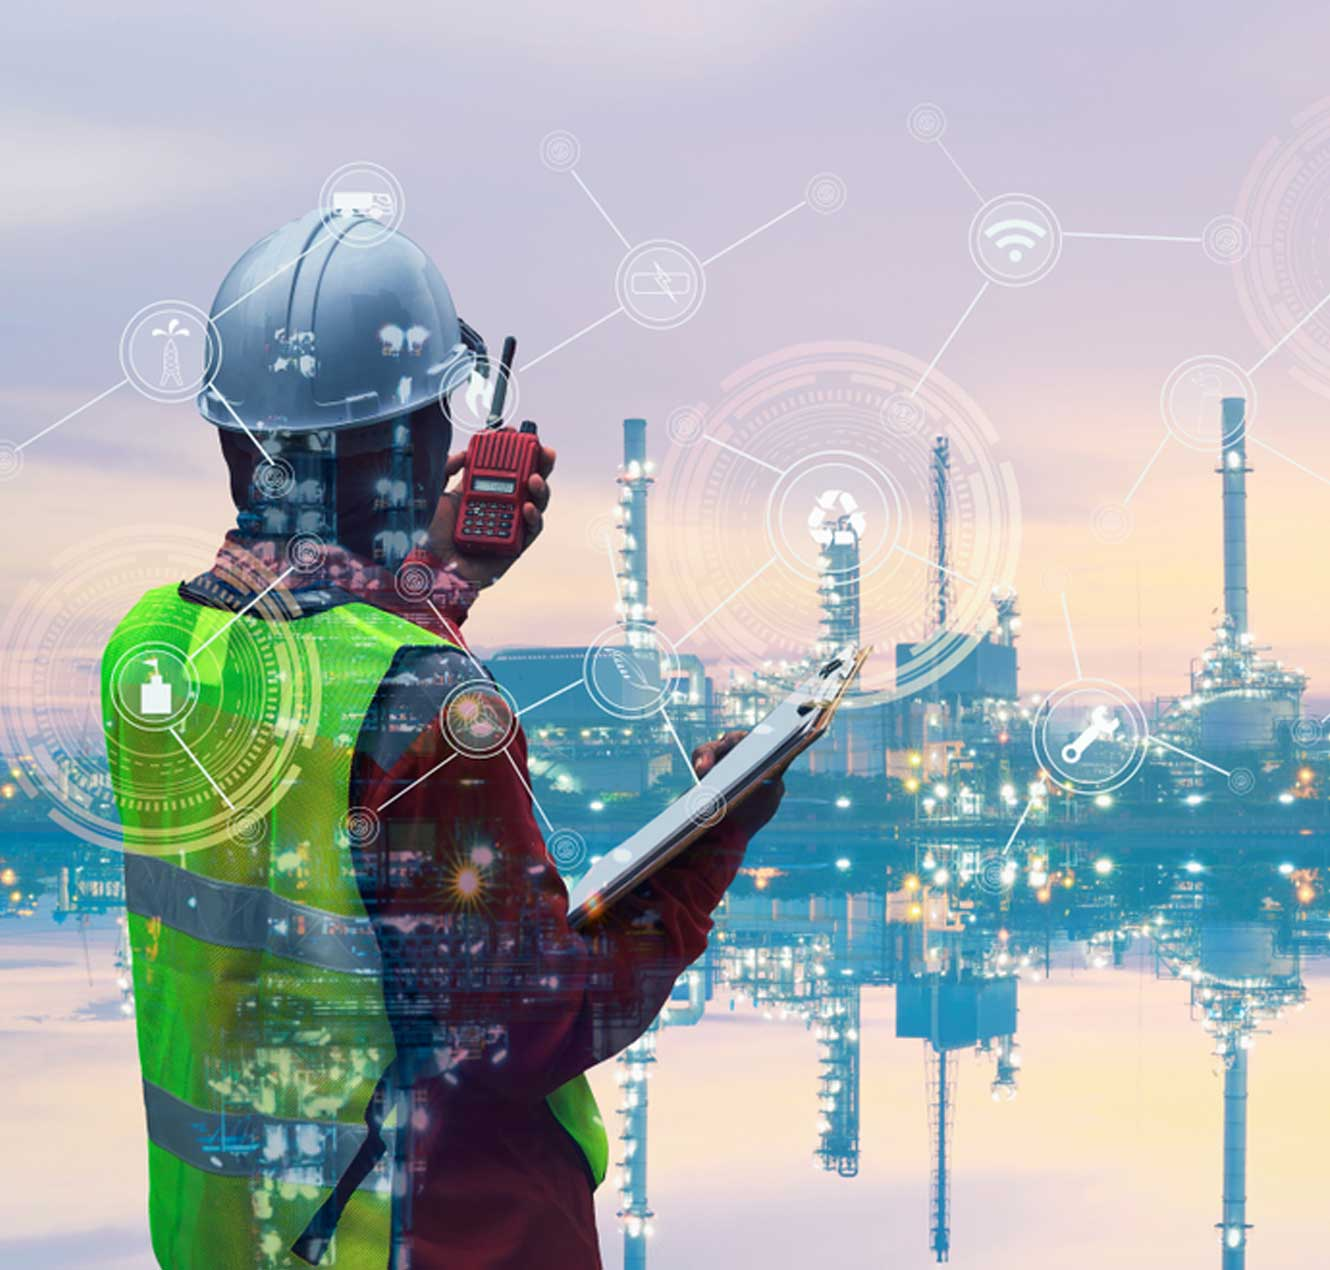 Engineer with oil refinery industry plant background, with tech icons on the image